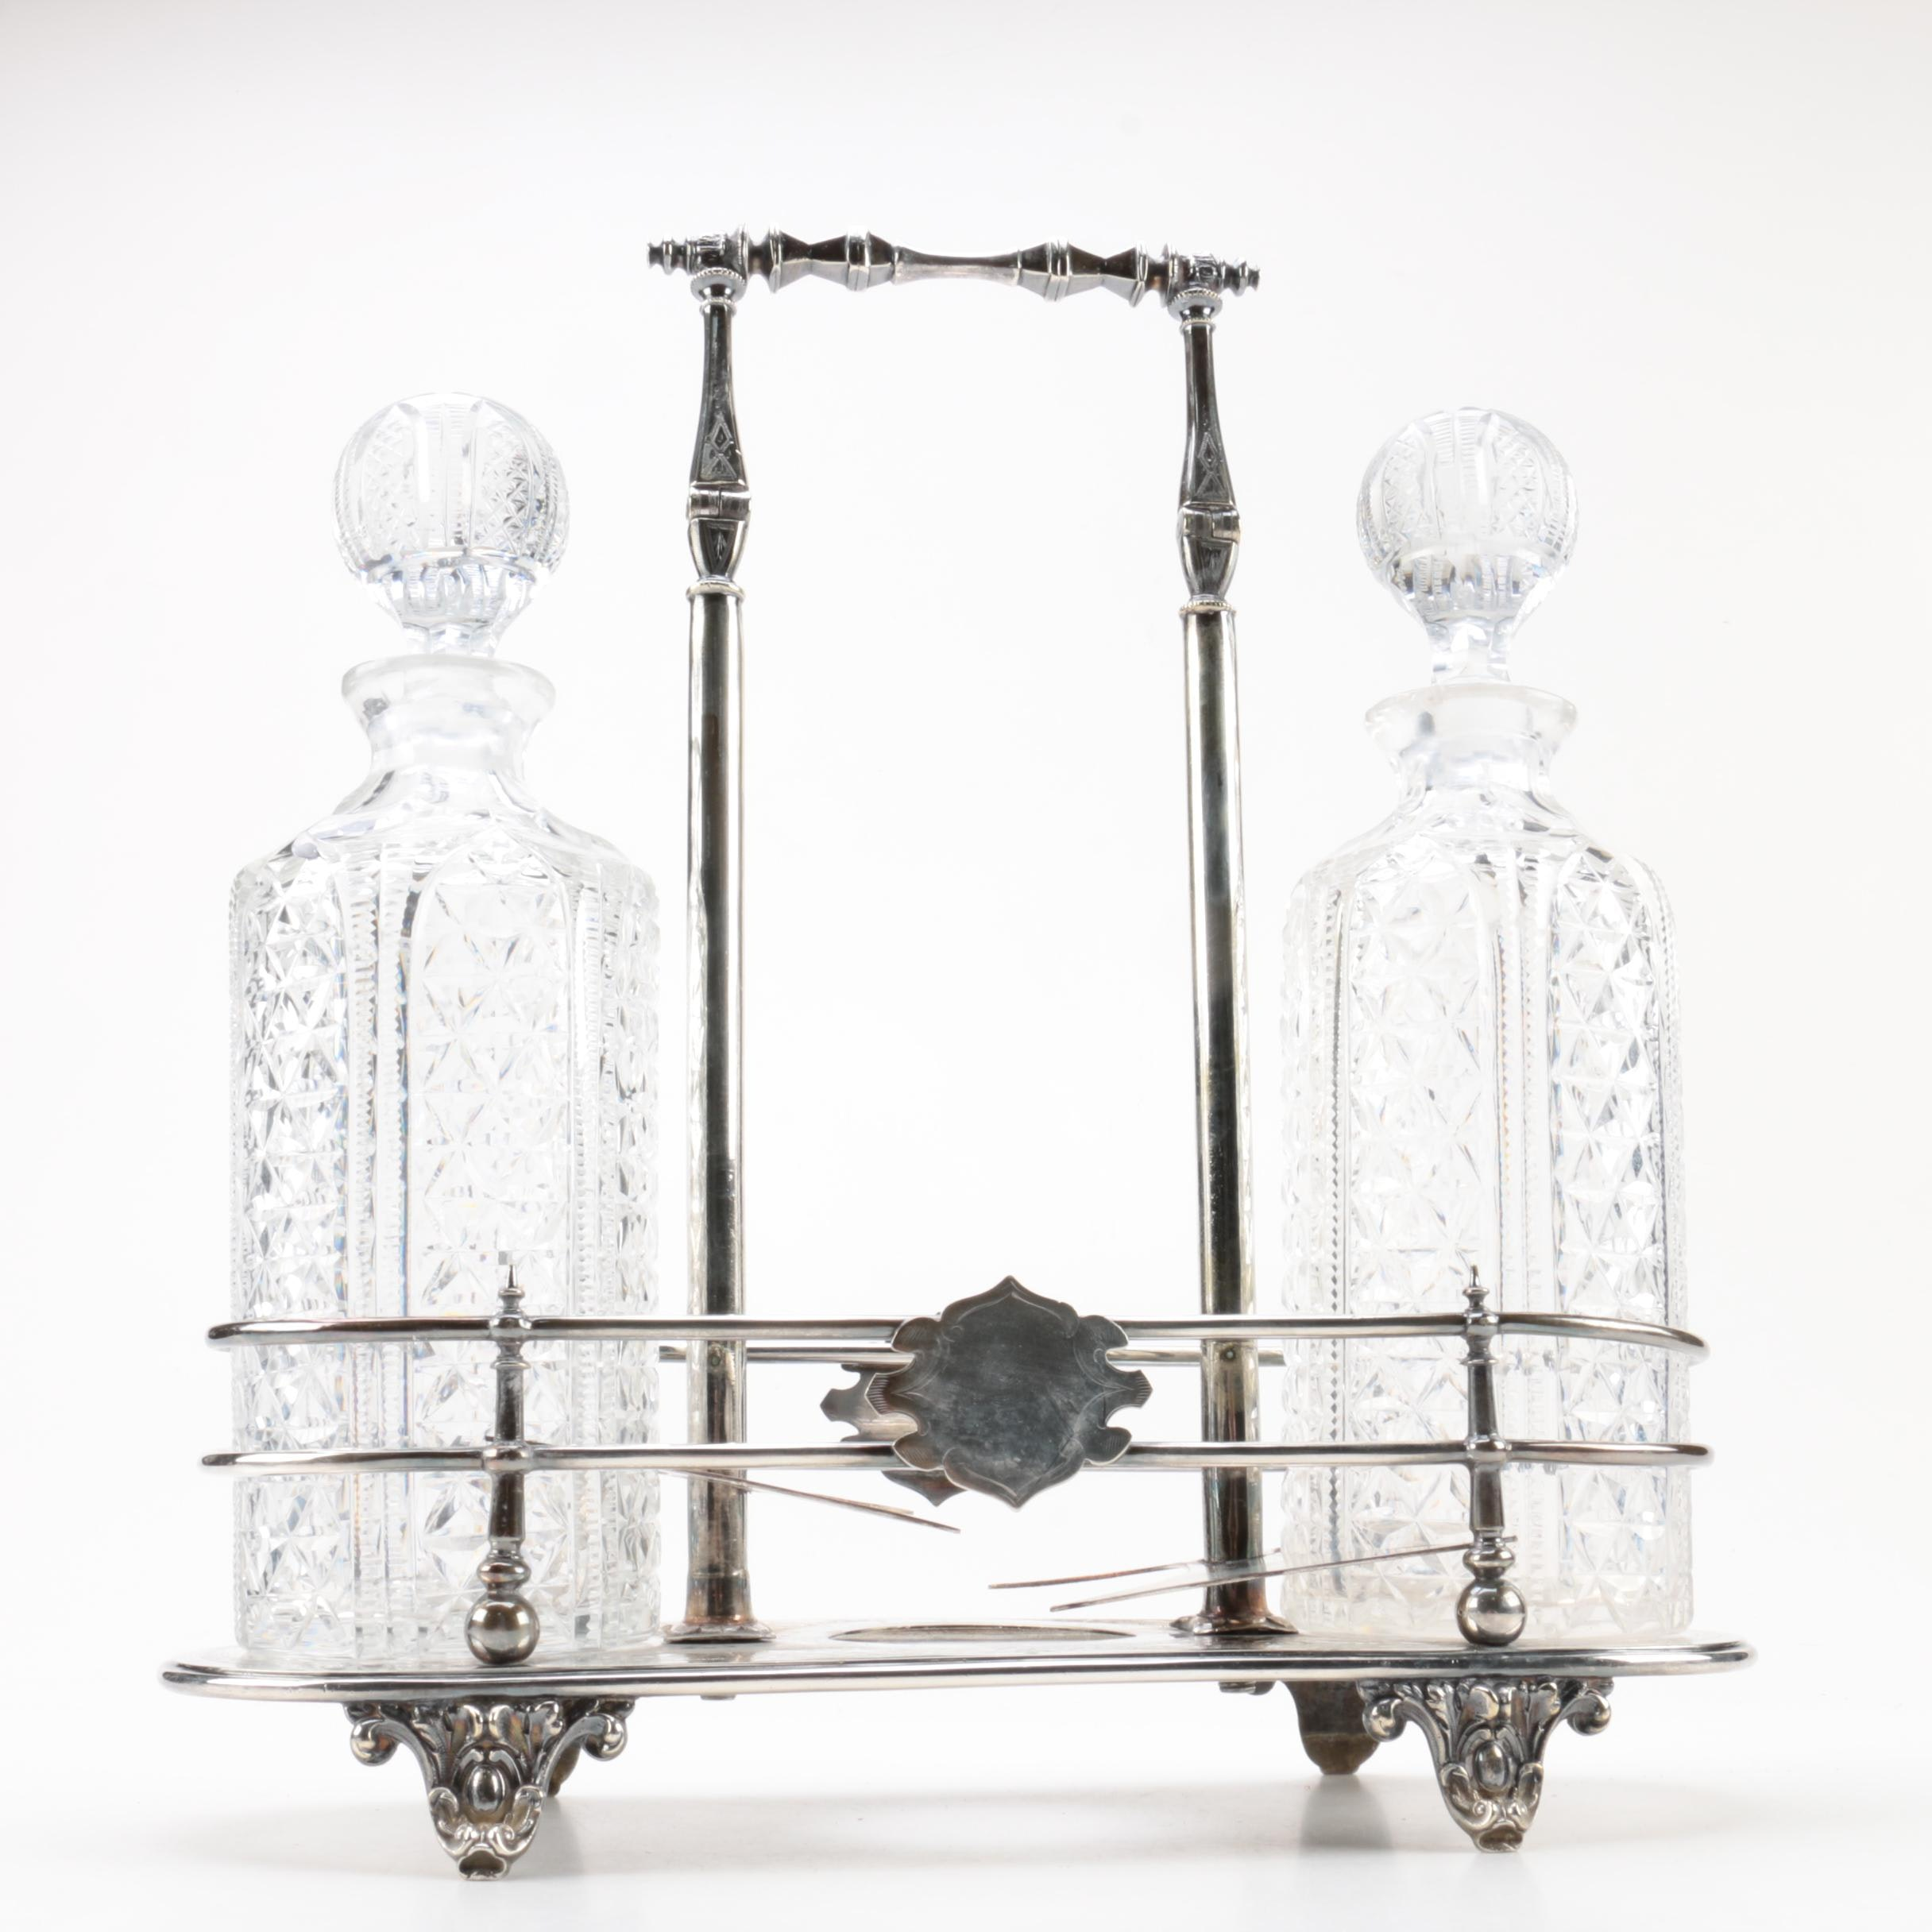 Crystal Decanters and Silver Plate Caddy